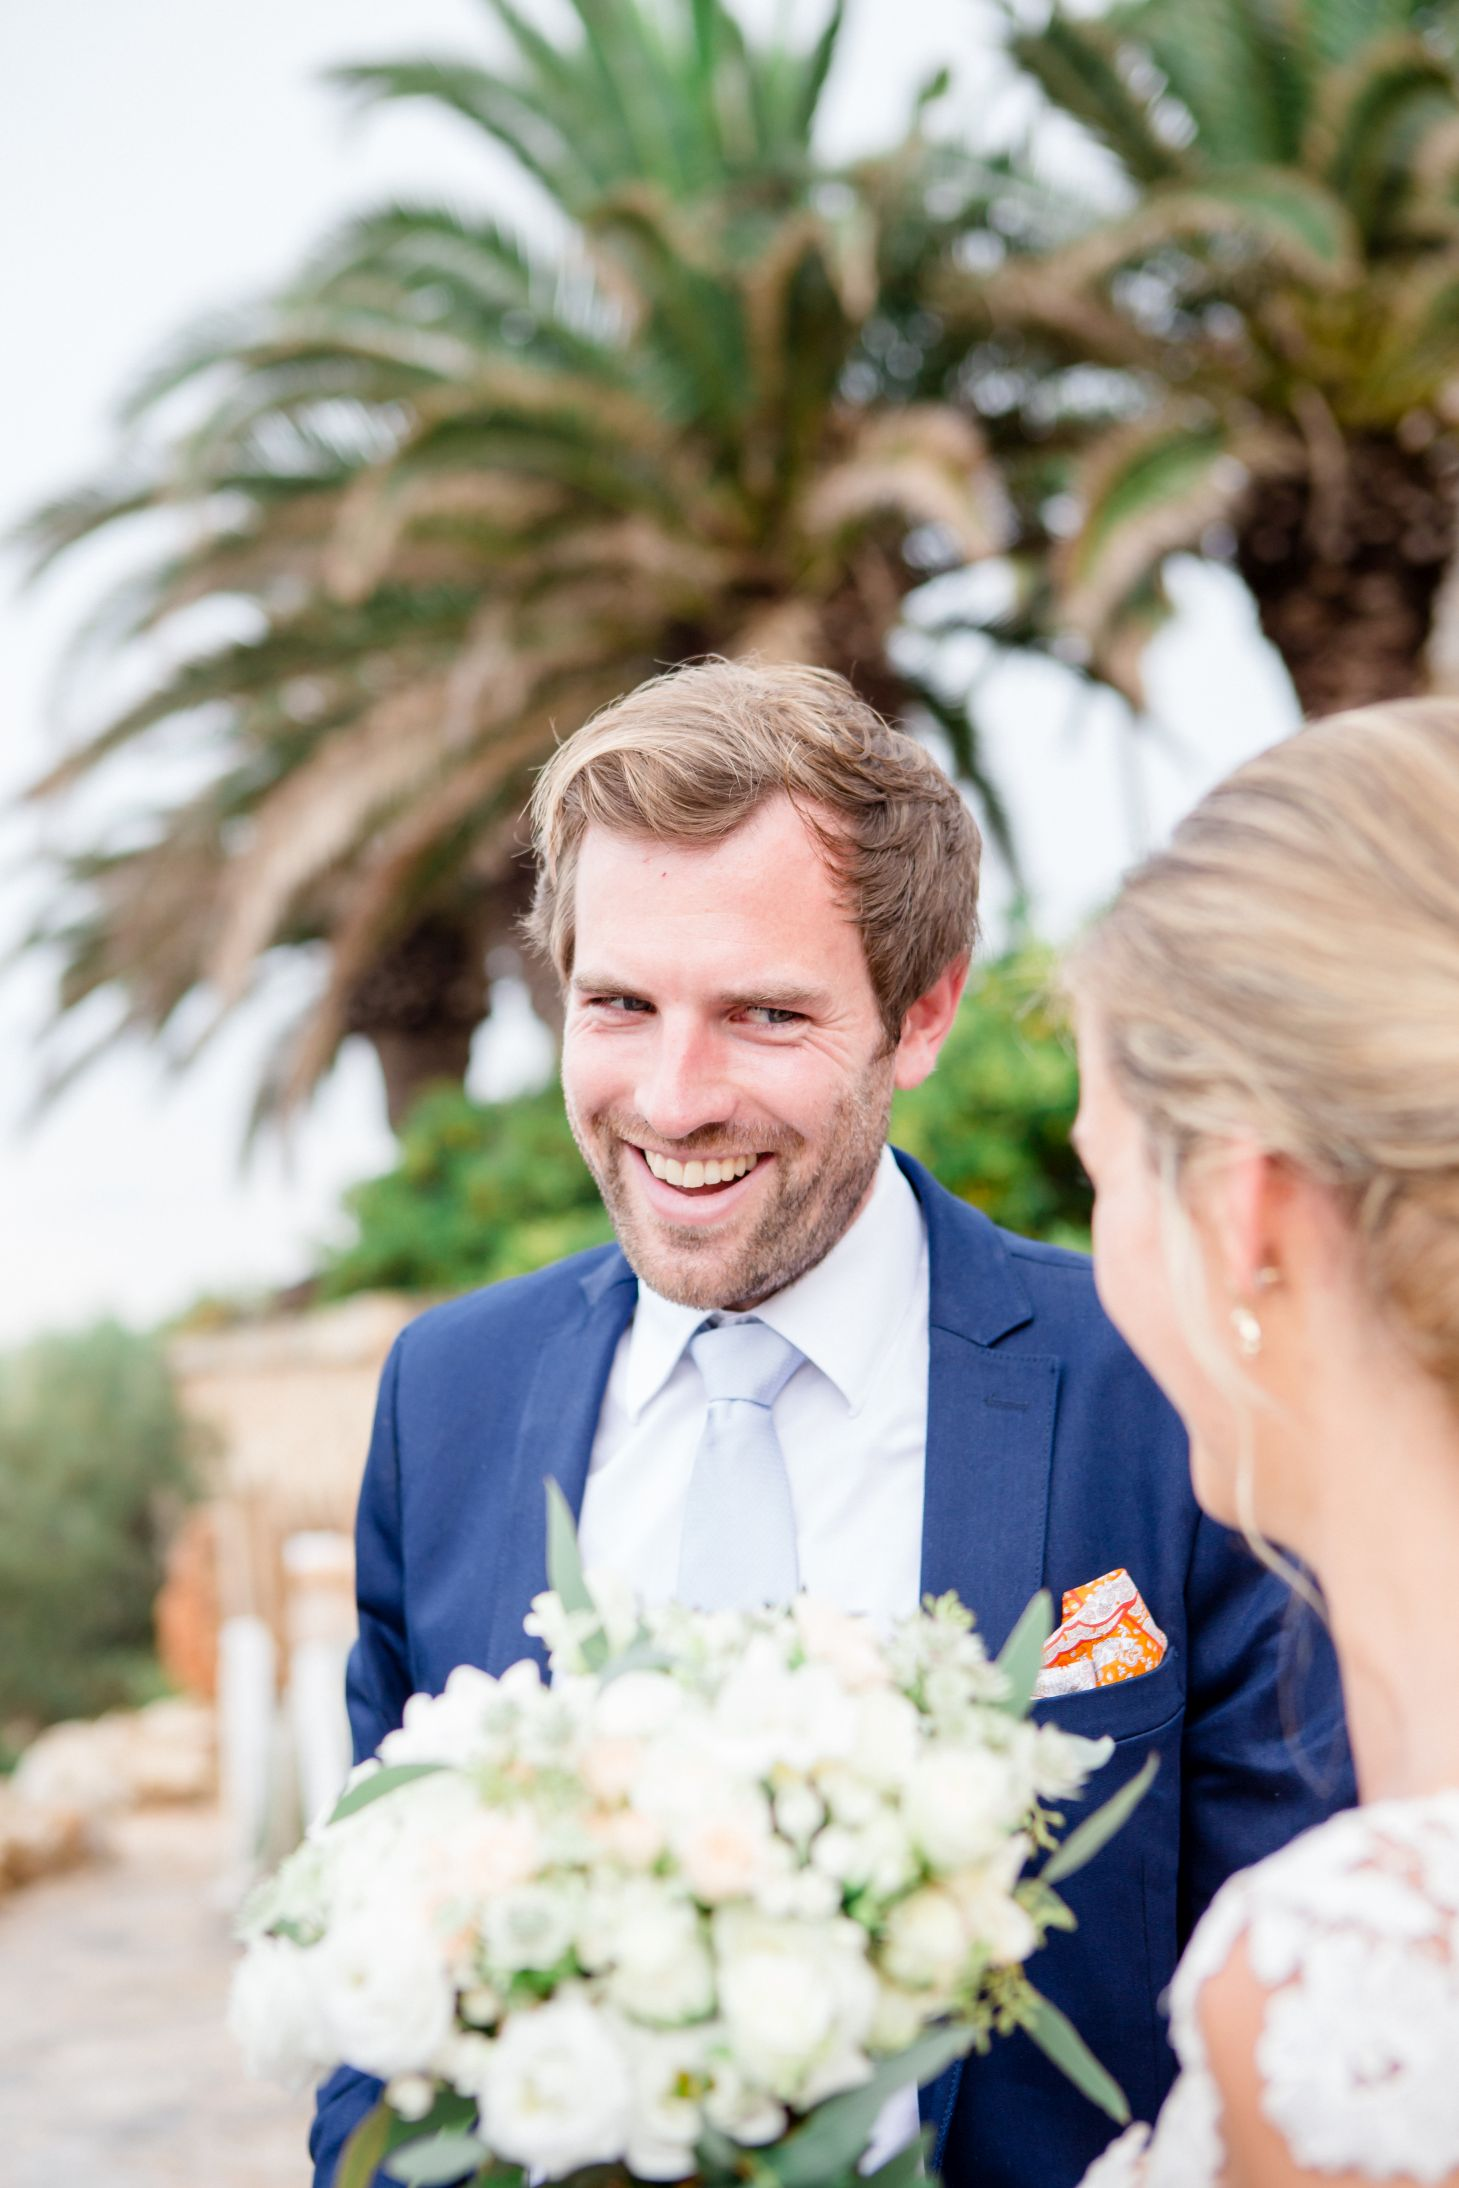 Million Memories_S&J_Hochzeitsfotograf_Mallorca_Spain_Wedding_Spanien Hochzeit_Balearen_Balearic islands_090